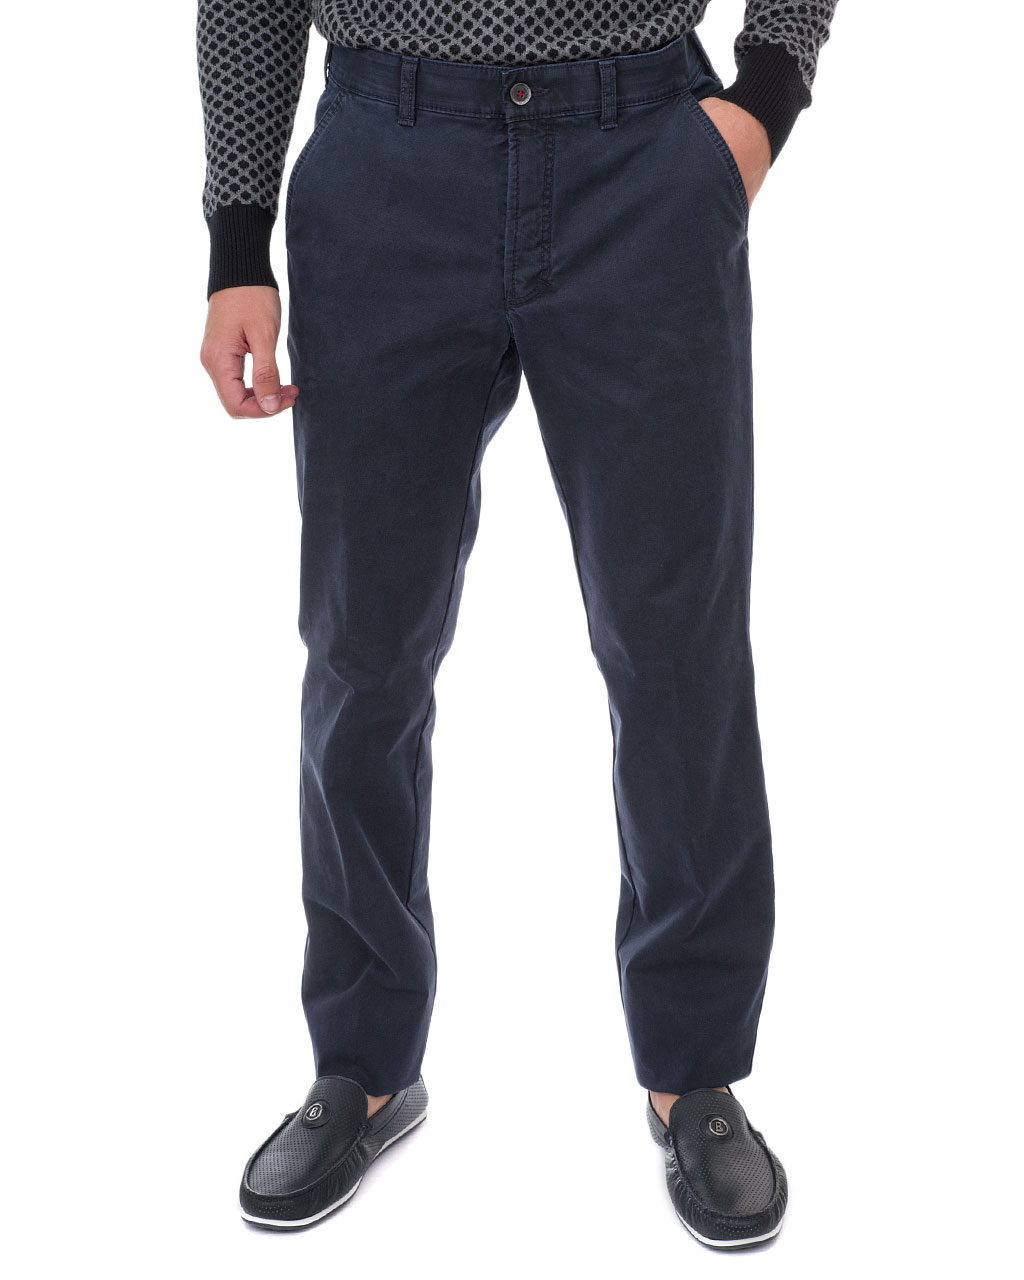 Men's trousers Garvey 6429-44/19-20 (1)